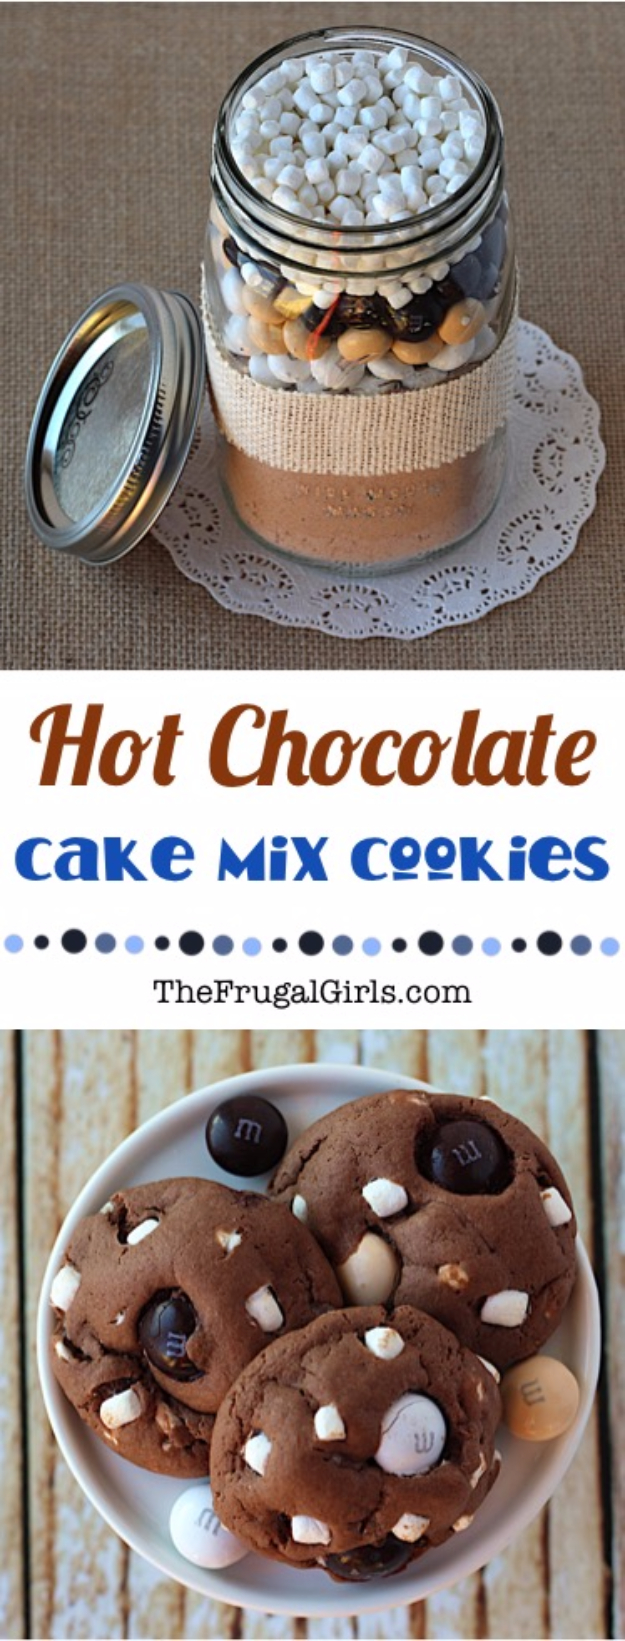 Best Mason Jar Cookies - Hot Chocolate Cake Mix Cookies - Mason Jar Cookie Recipe Mix for Cute Decorated DIY Gifts - Easy Chocolate Chip Recipes, Christmas Presents and Wedding Favors in Mason Jars - Fun Ideas for DIY Parties and Cheap Last Minute Gift Ideas for Friends #diygifts #masonjarcrafts